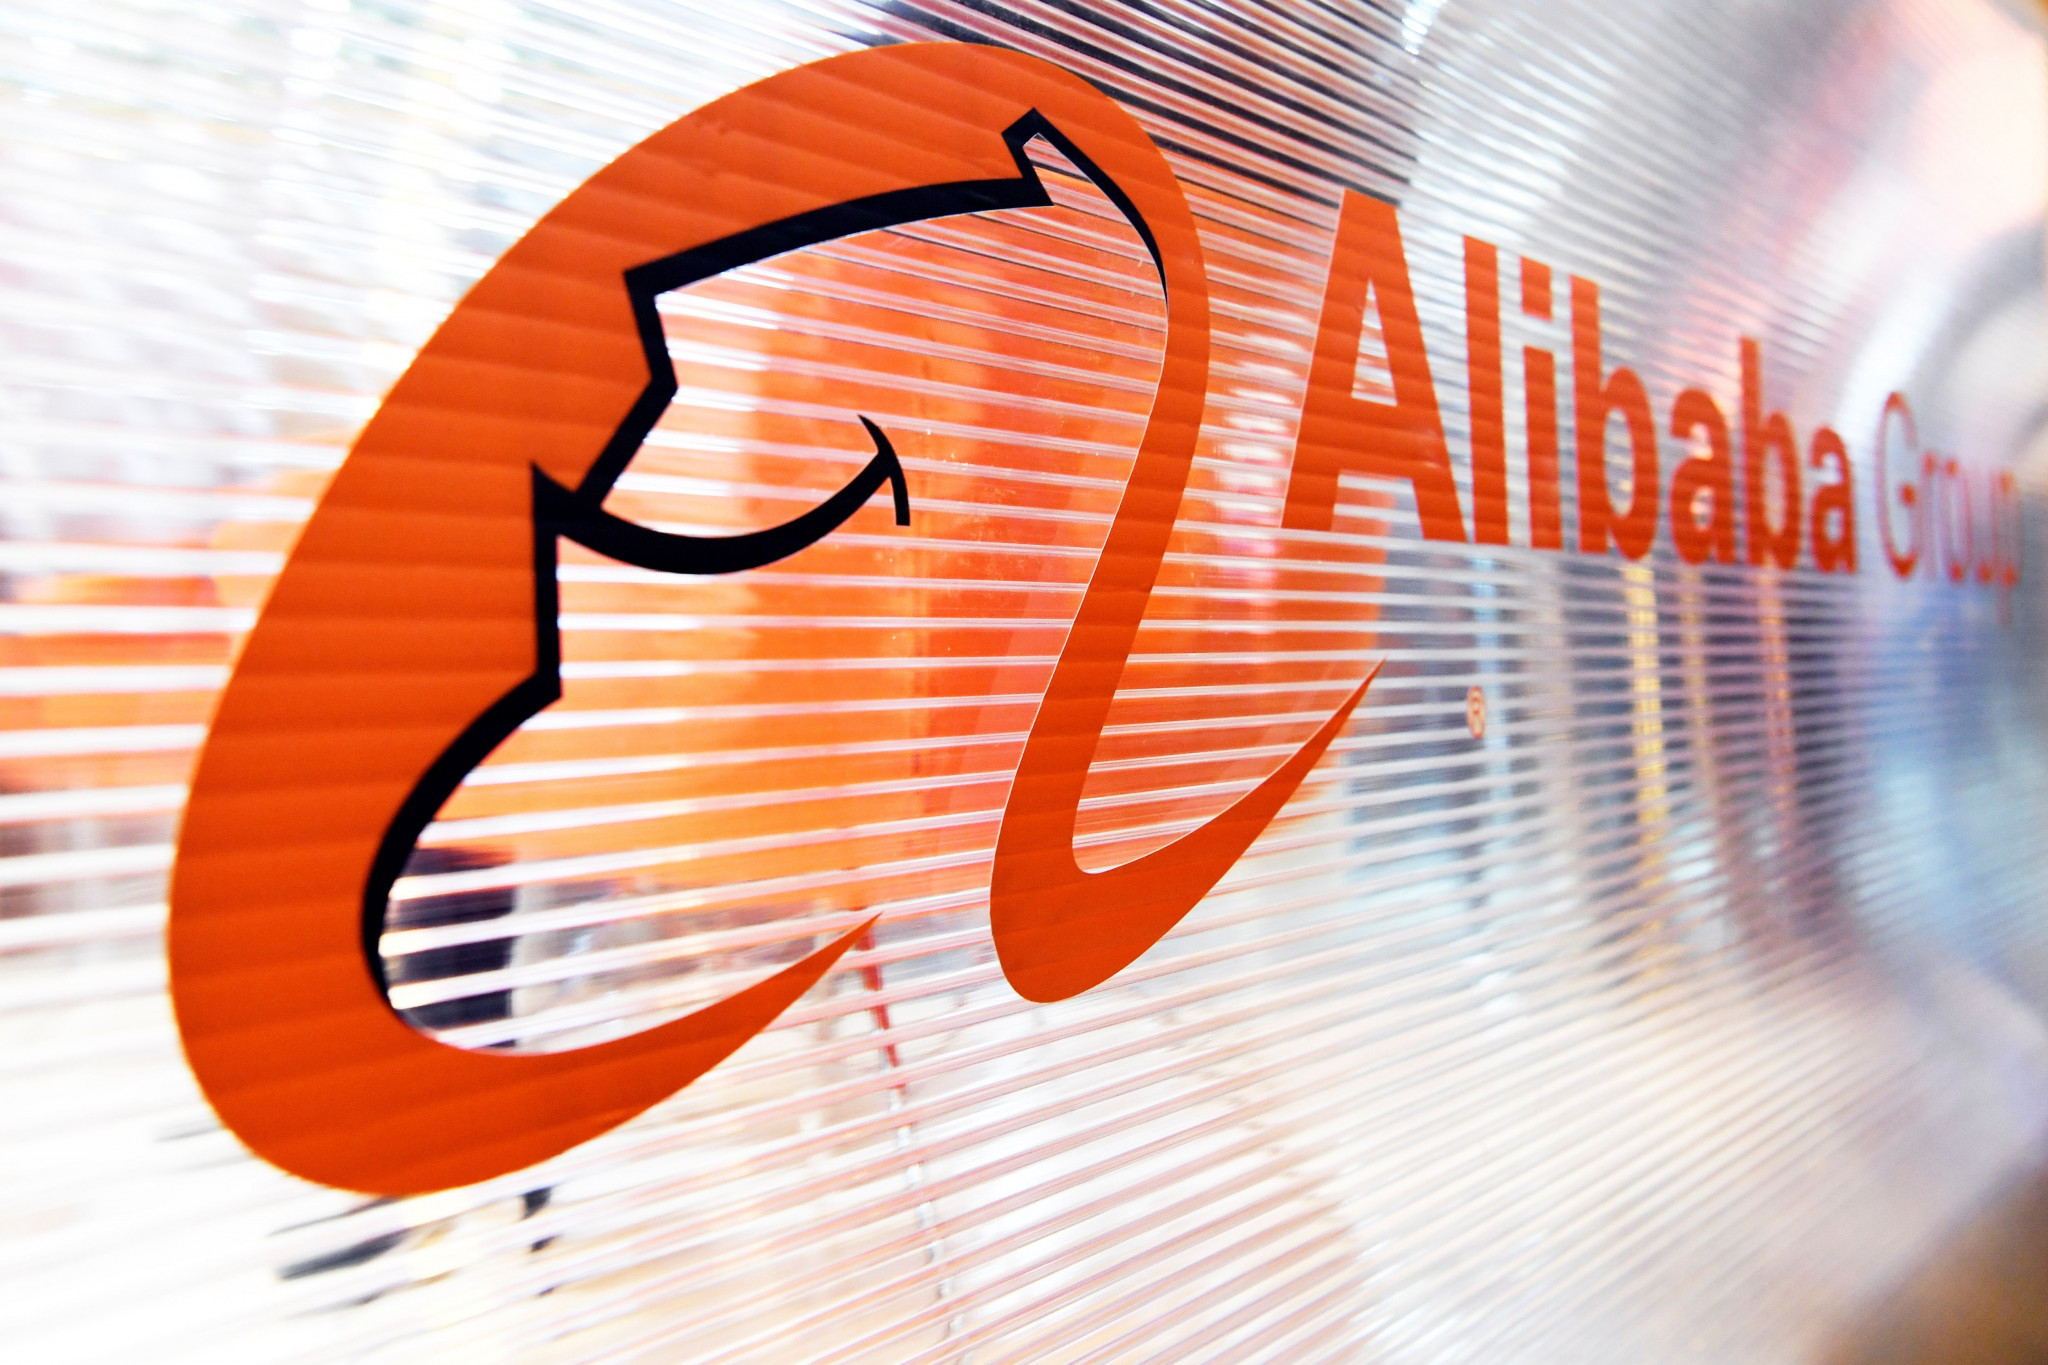 Chinese TOP sponsor Alibaba will be involved at the facility ©Getty Images